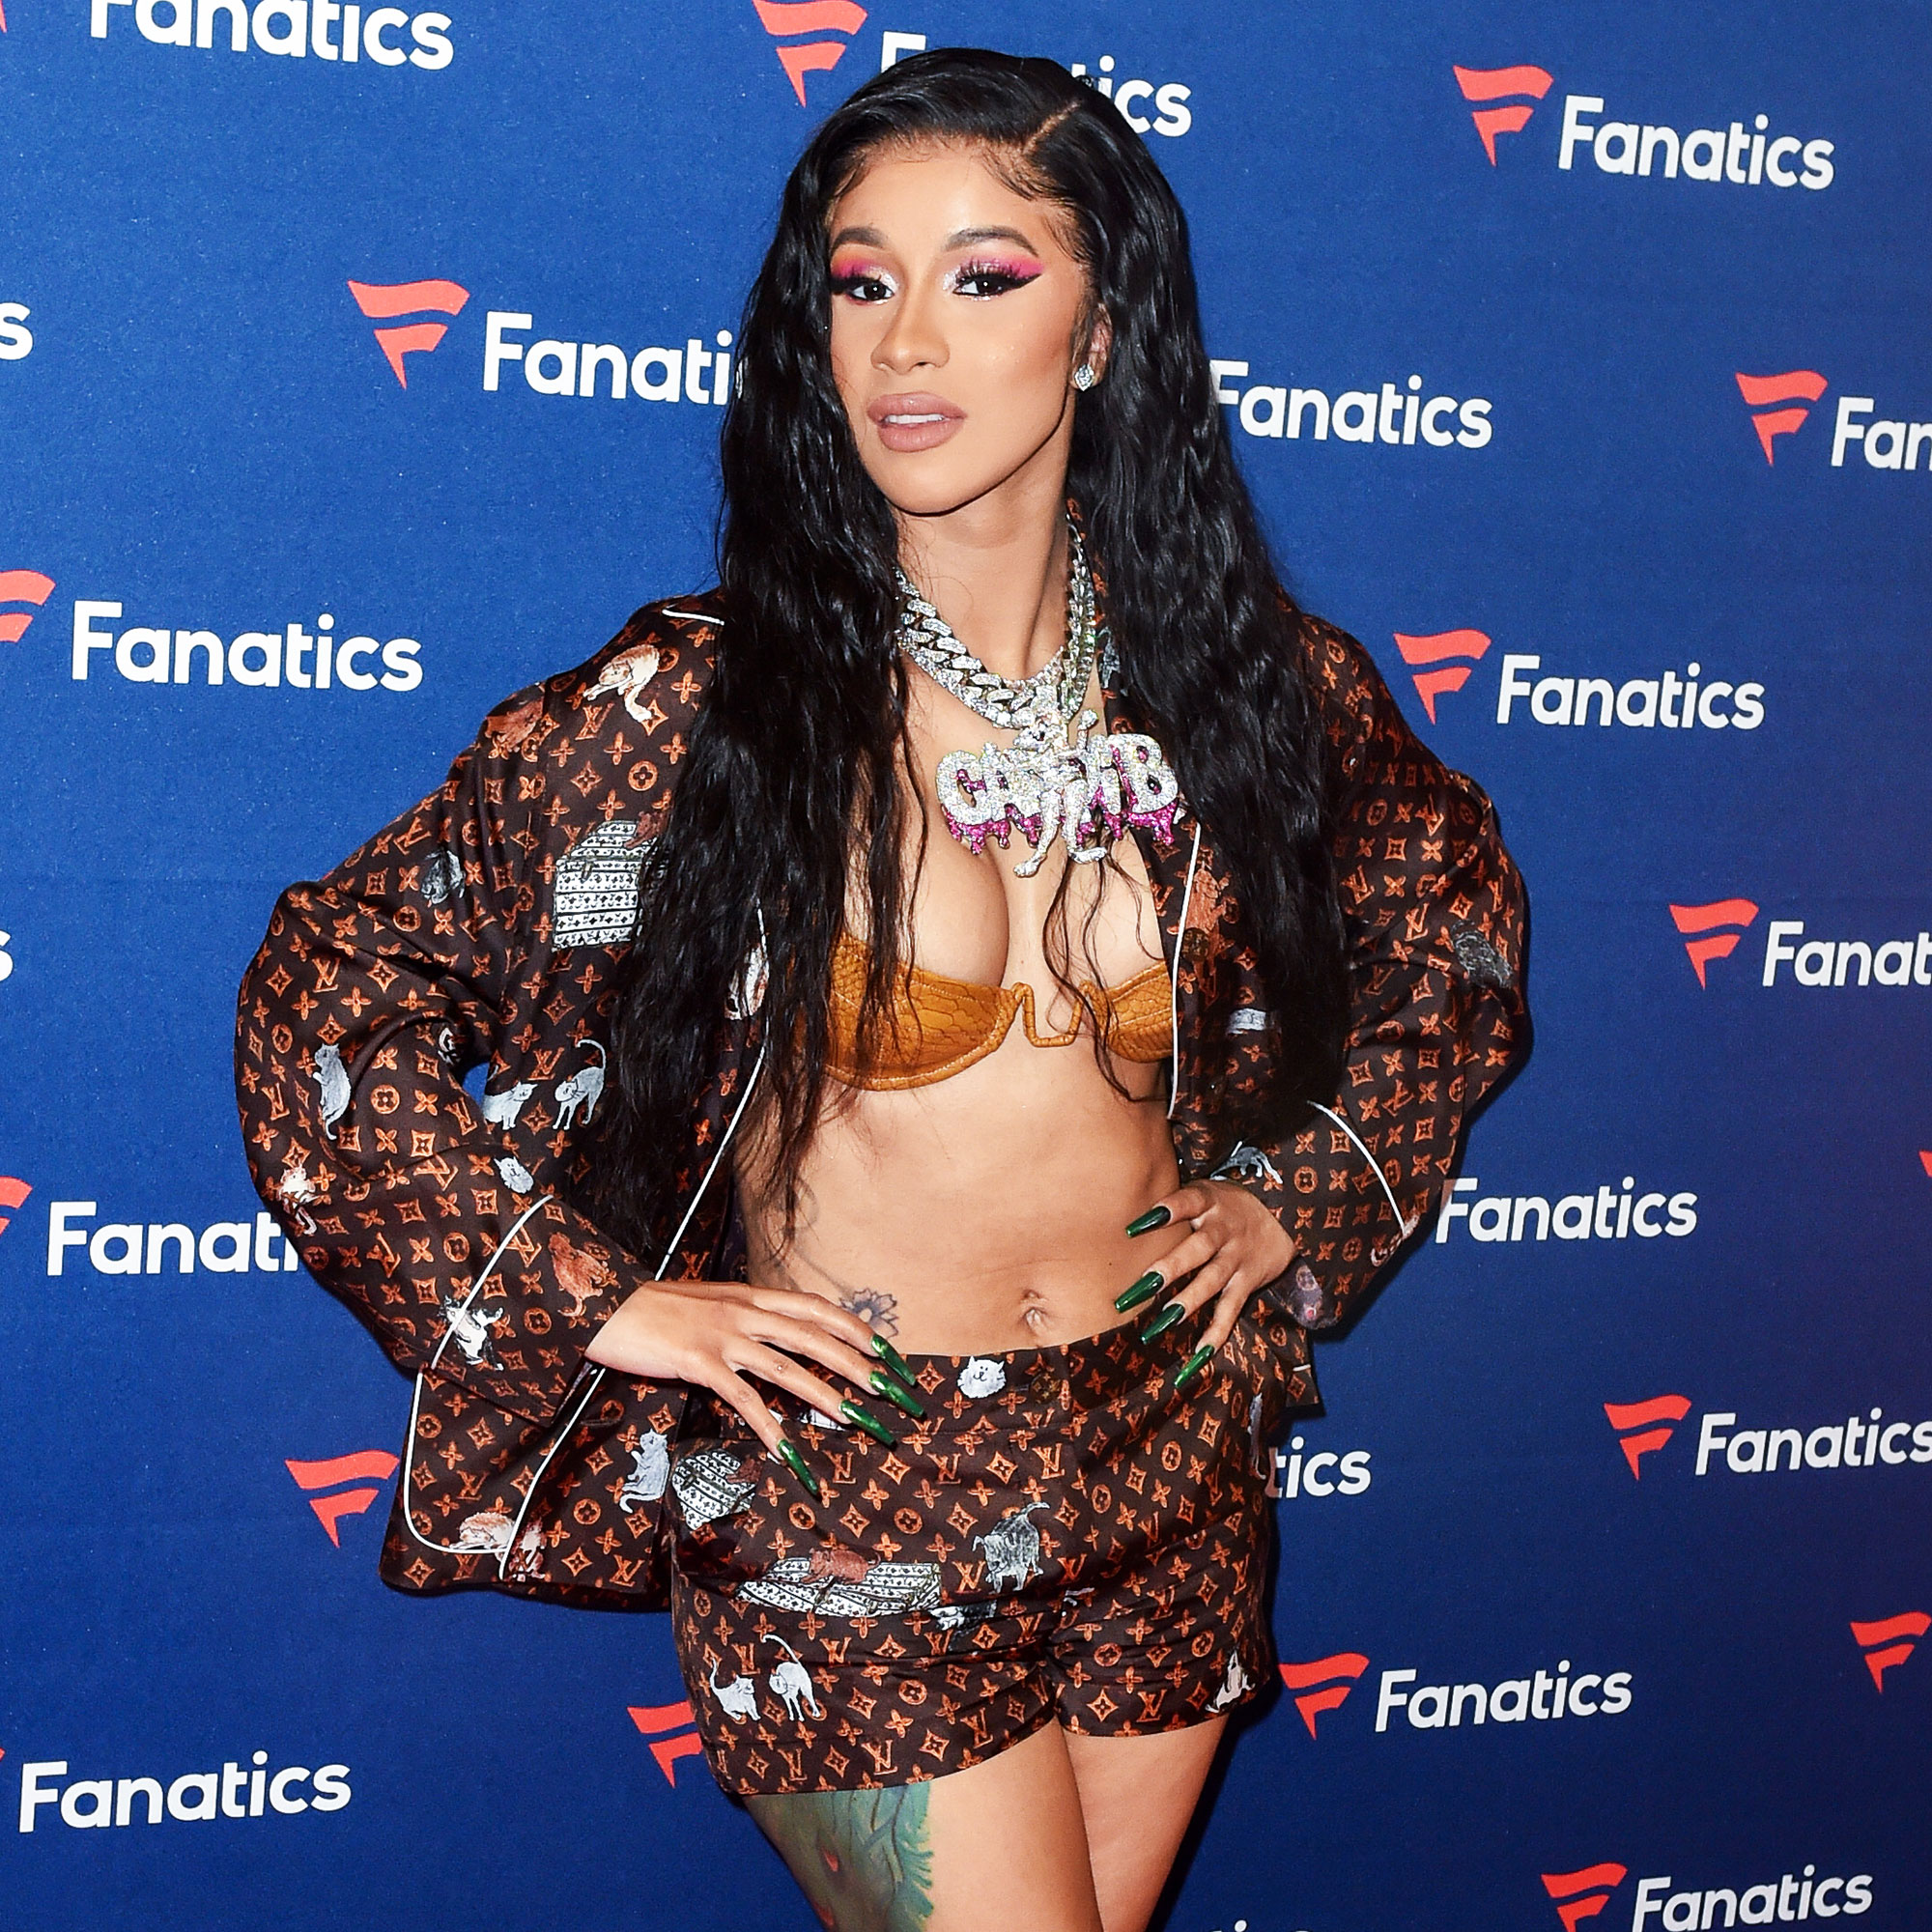 Cardi B's Mother's Day Feast - Cardi B. arrives to Michael Rubin's Fanatics Super Bowl Party at the College Football Hall of Fame on February 2, 2019 in Atlanta, Georgia.